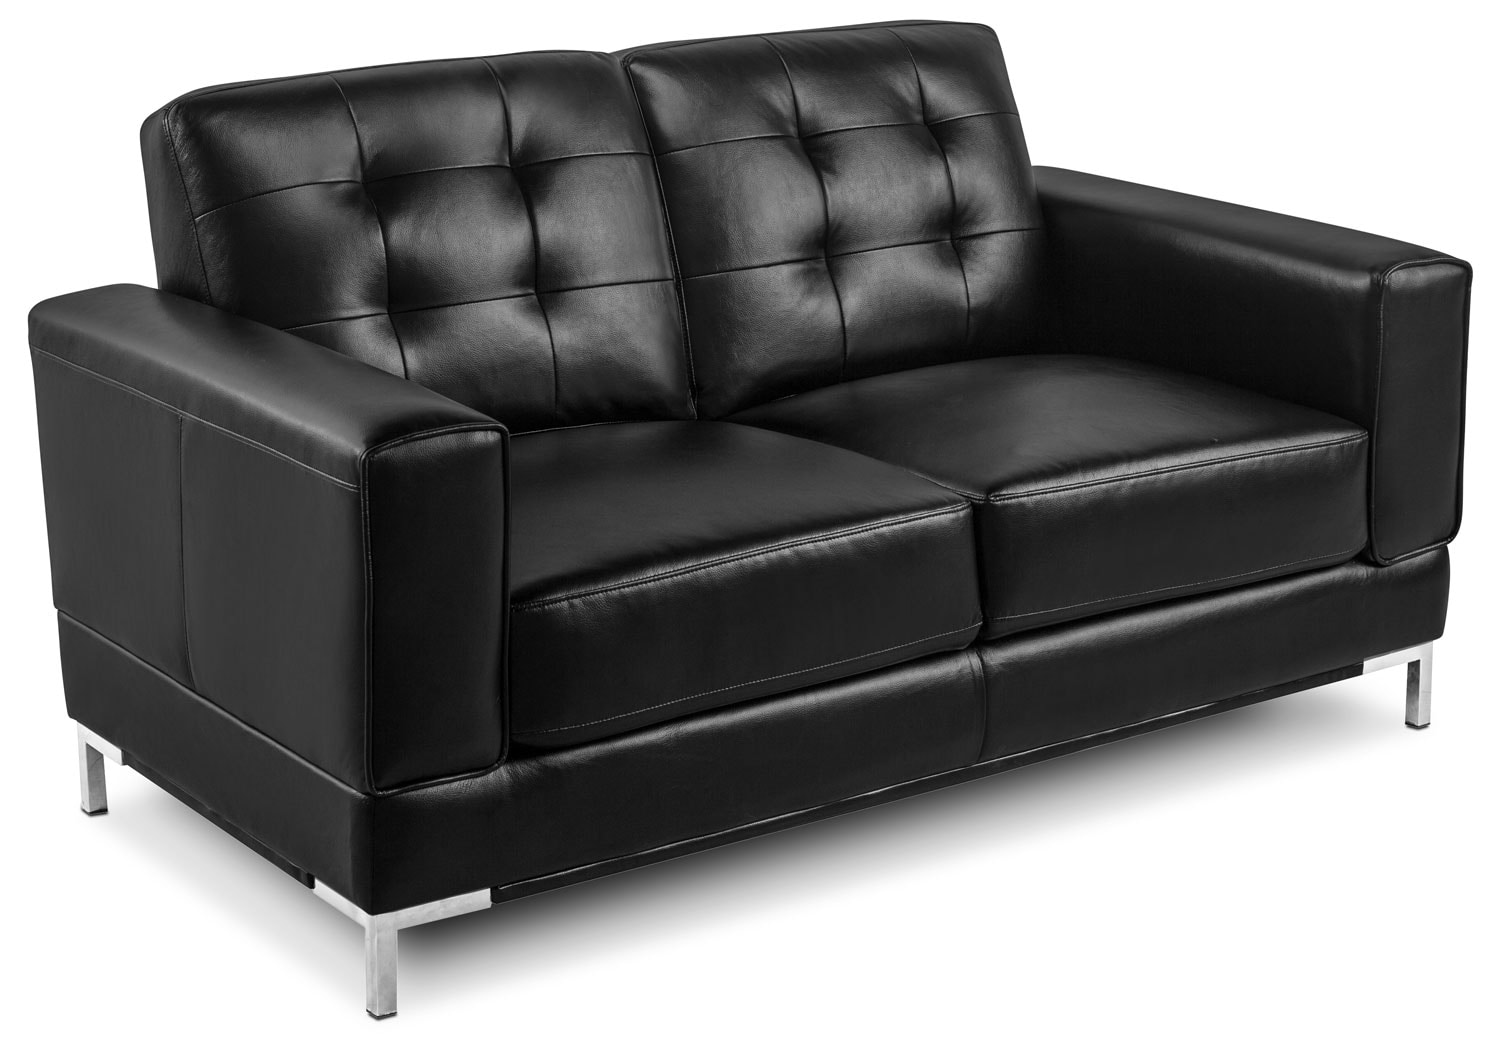 Myer leather look fabric sofa black the brick for Black fabric couches